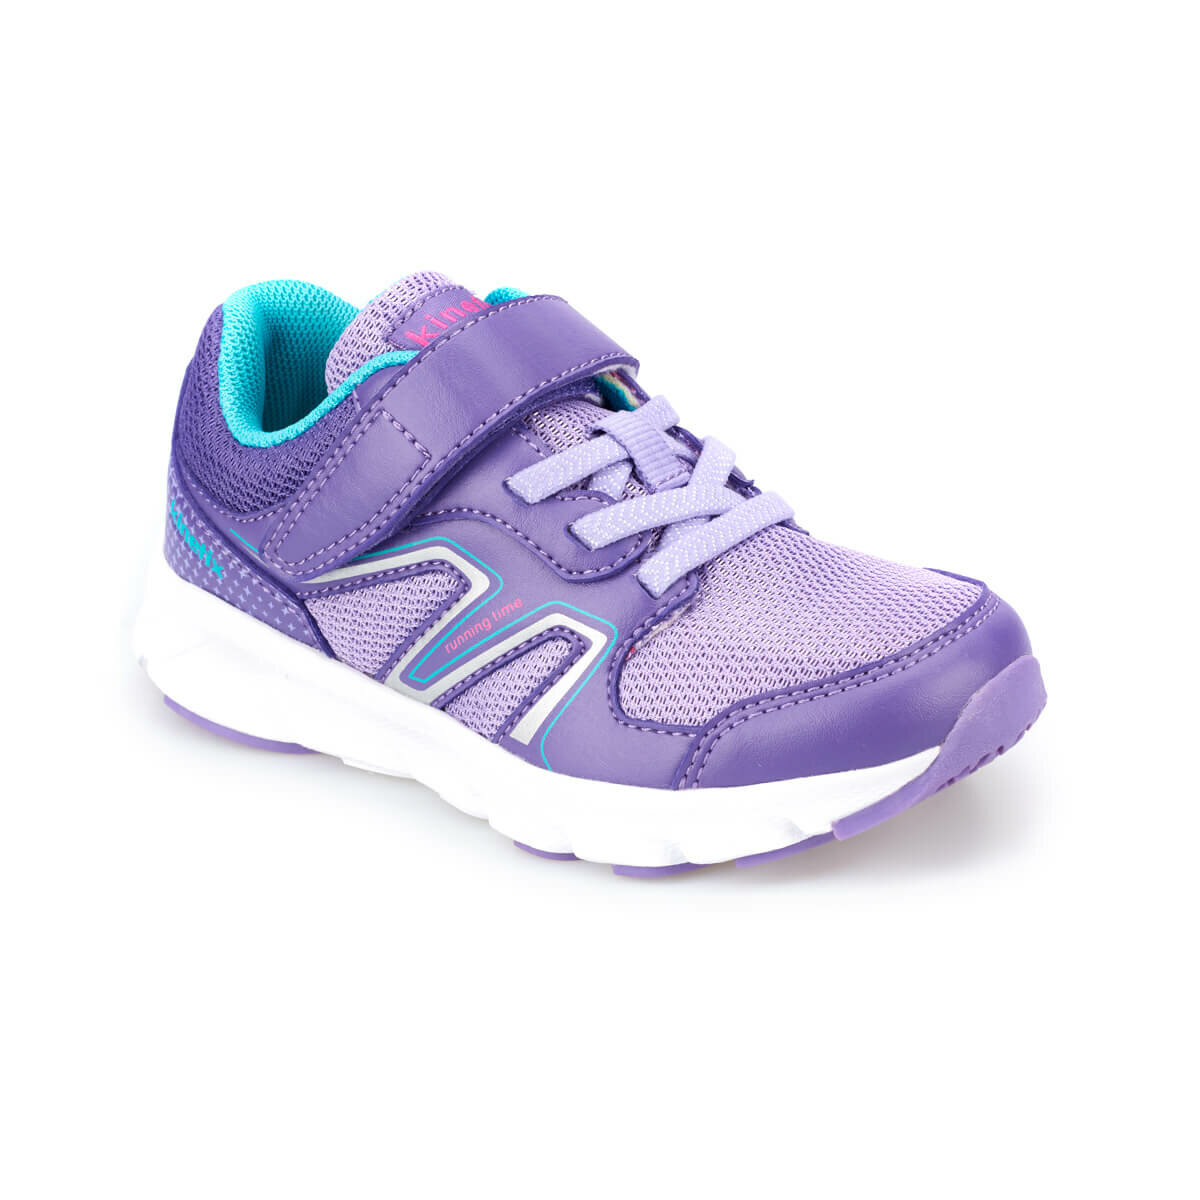 FLO JIKA Purple Female Child Running Shoes KINETIX